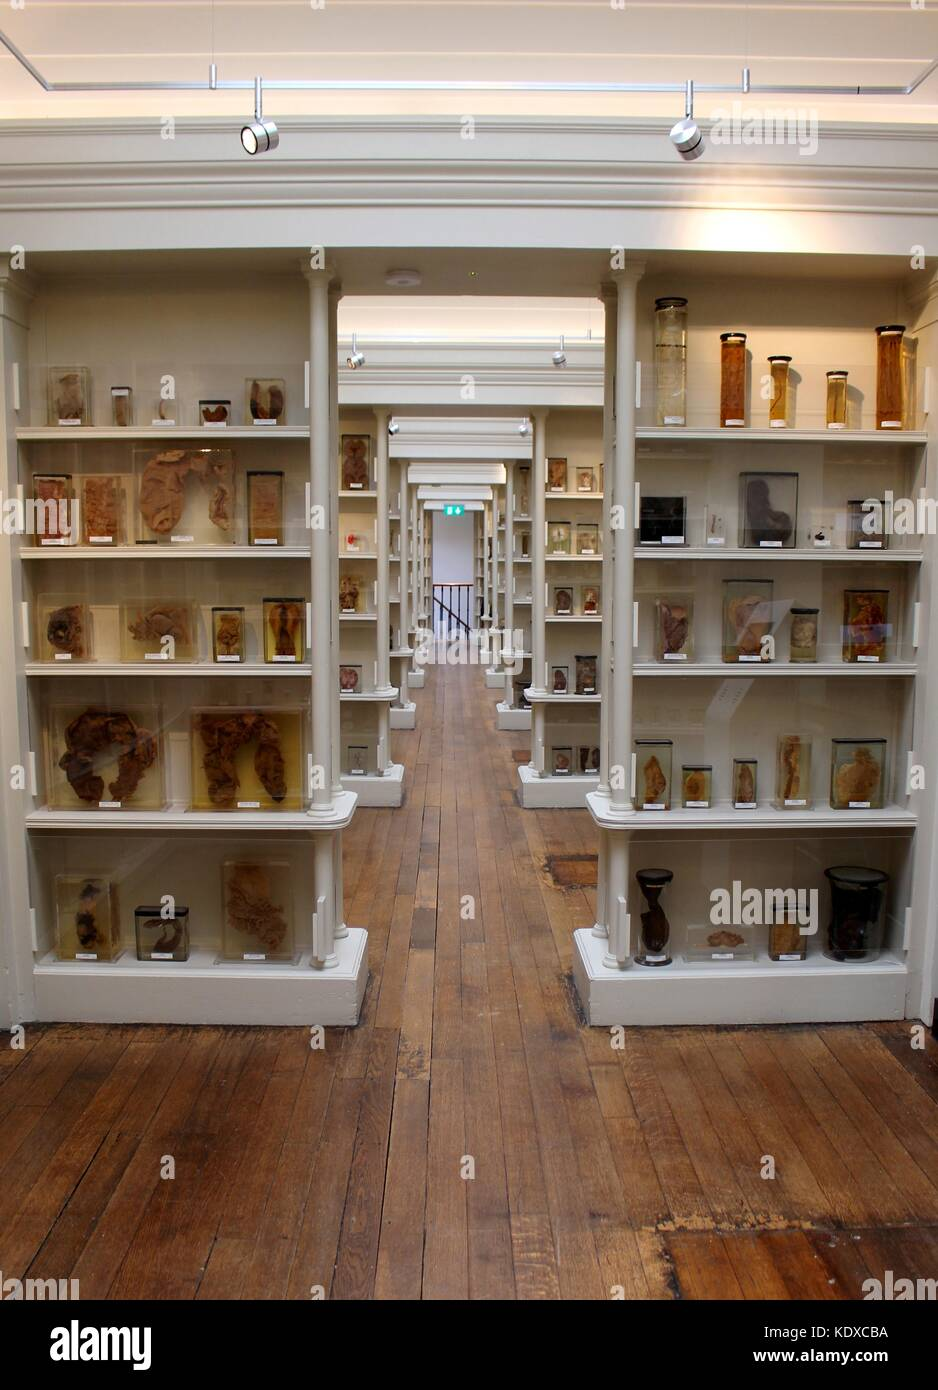 The Wohl Pathology Museum is home to one of the largest collections of pathological anatomy in the world. - Stock Image